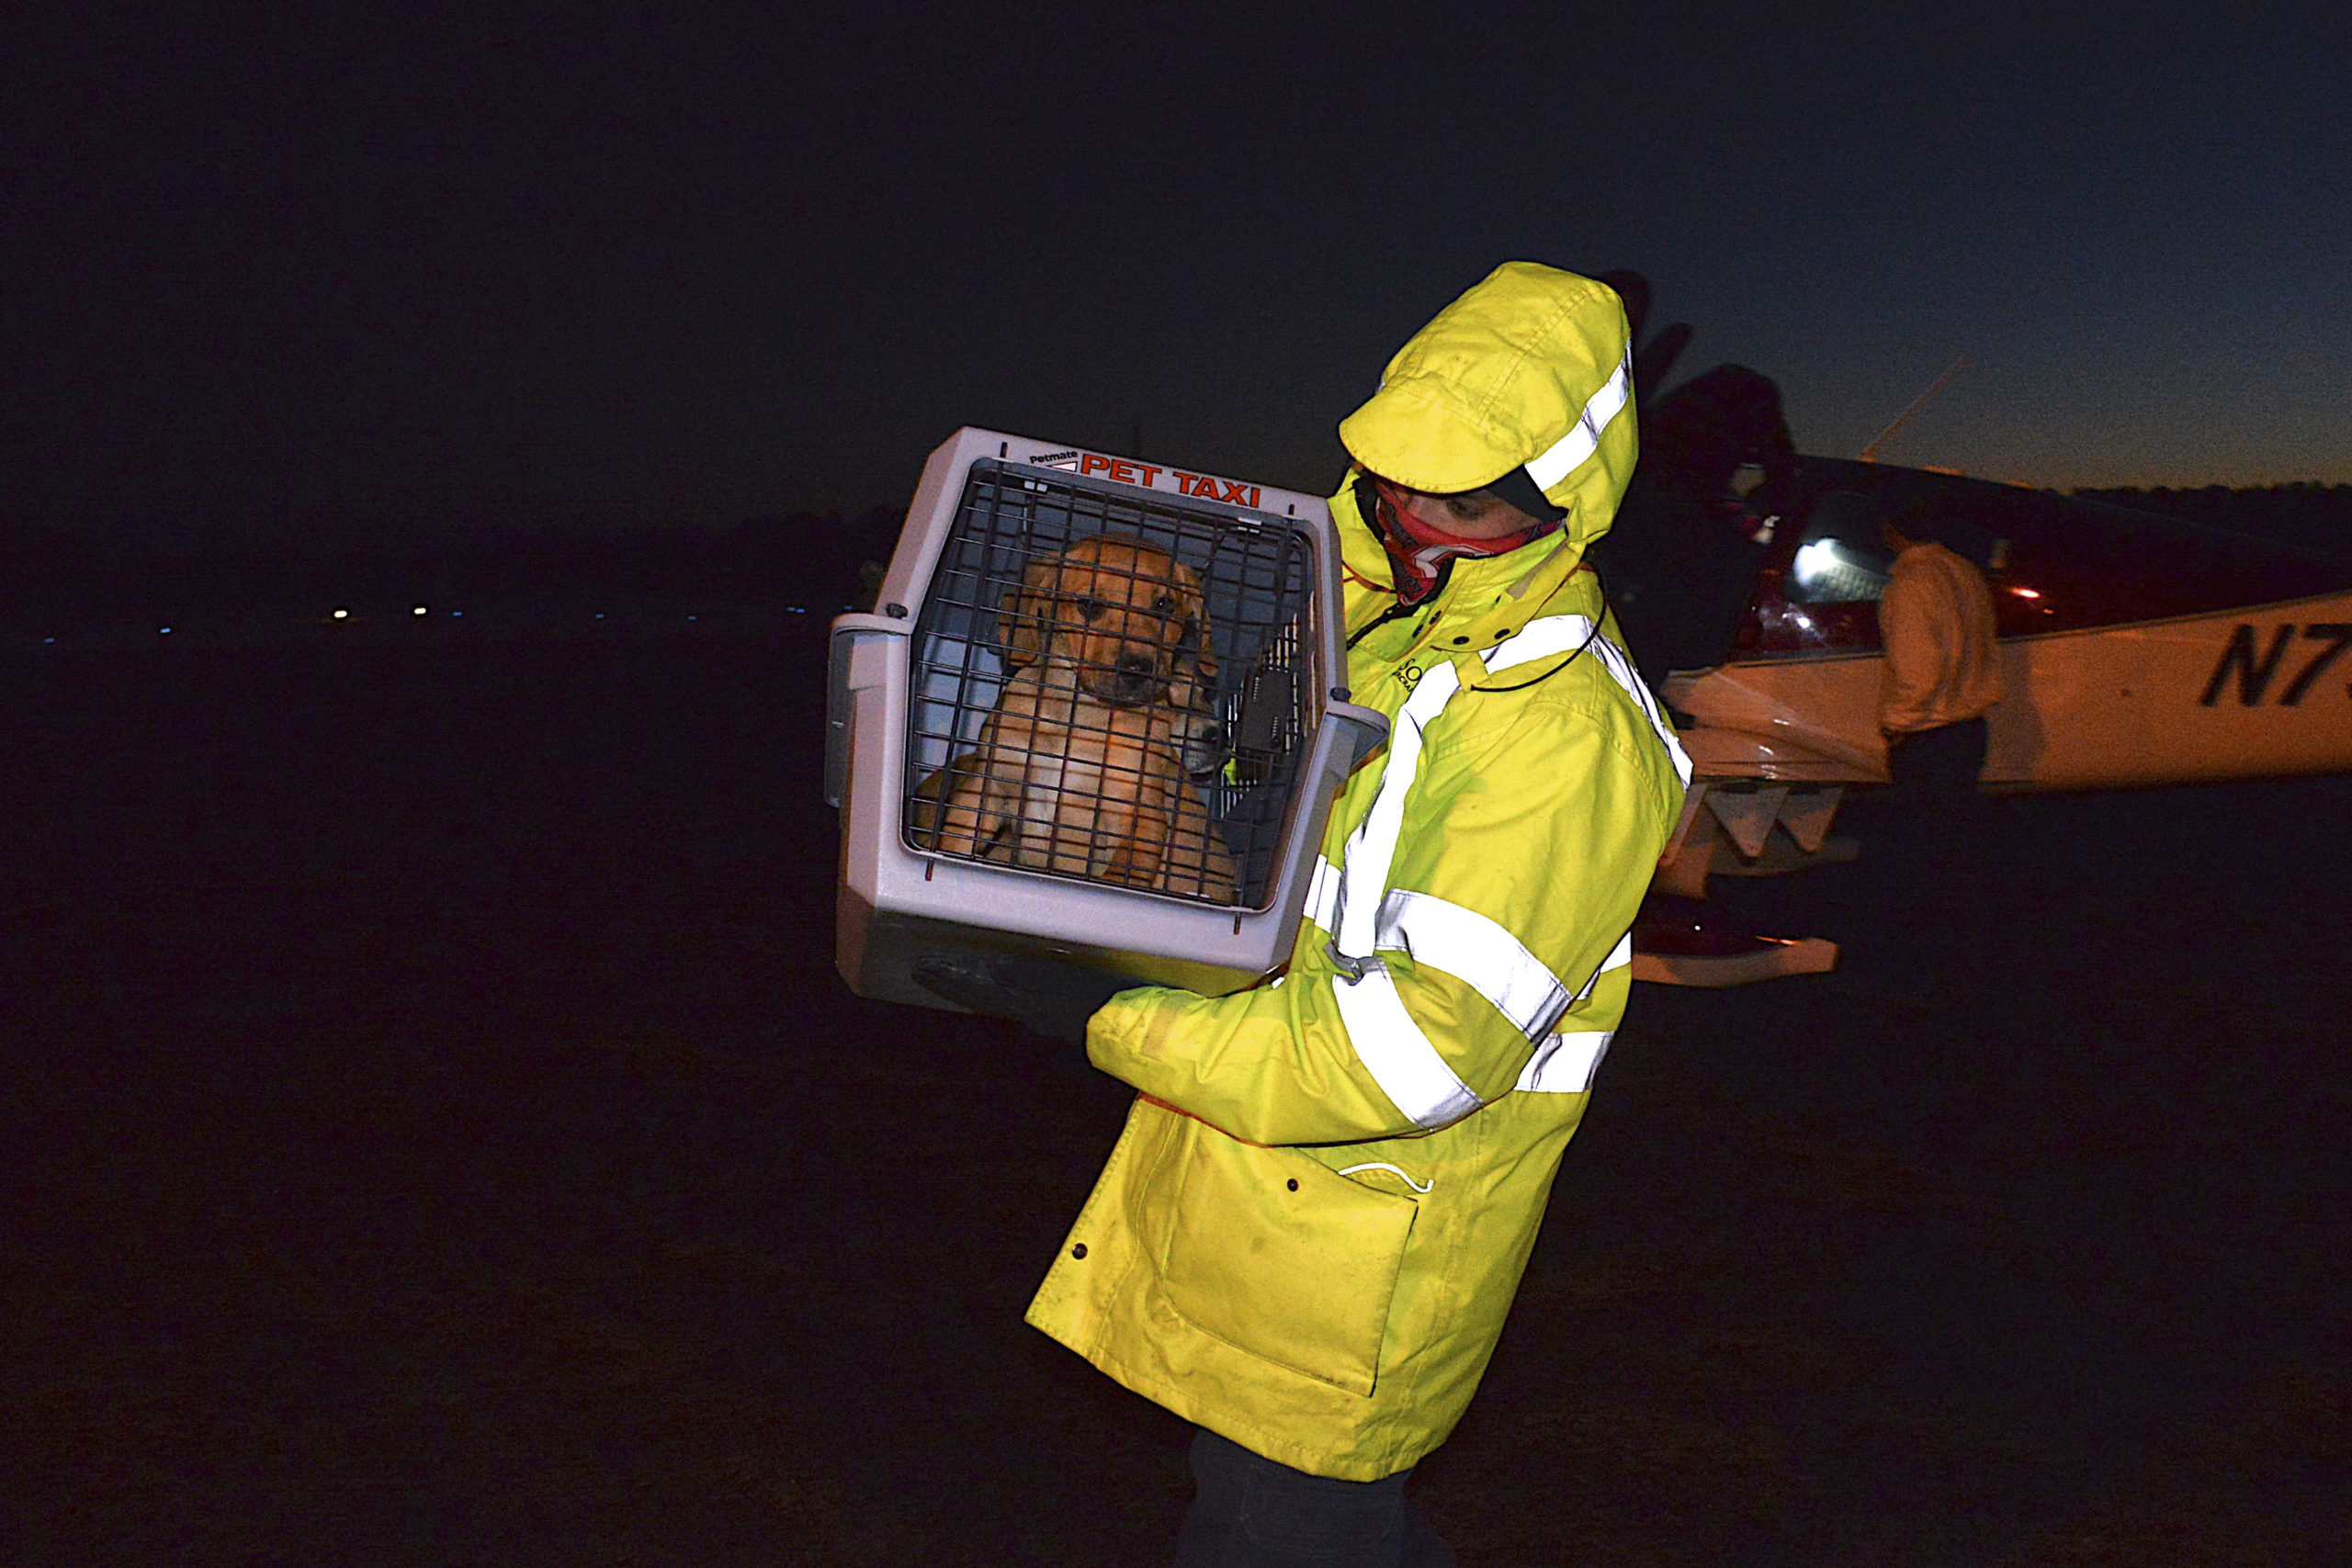 ARF is received 15 puppies from its rescue partner in South Carolina on December 18. Local pilot and flight instructor Charles Caravan offered his services and a plane for the transport. KYRIL BROMLEY